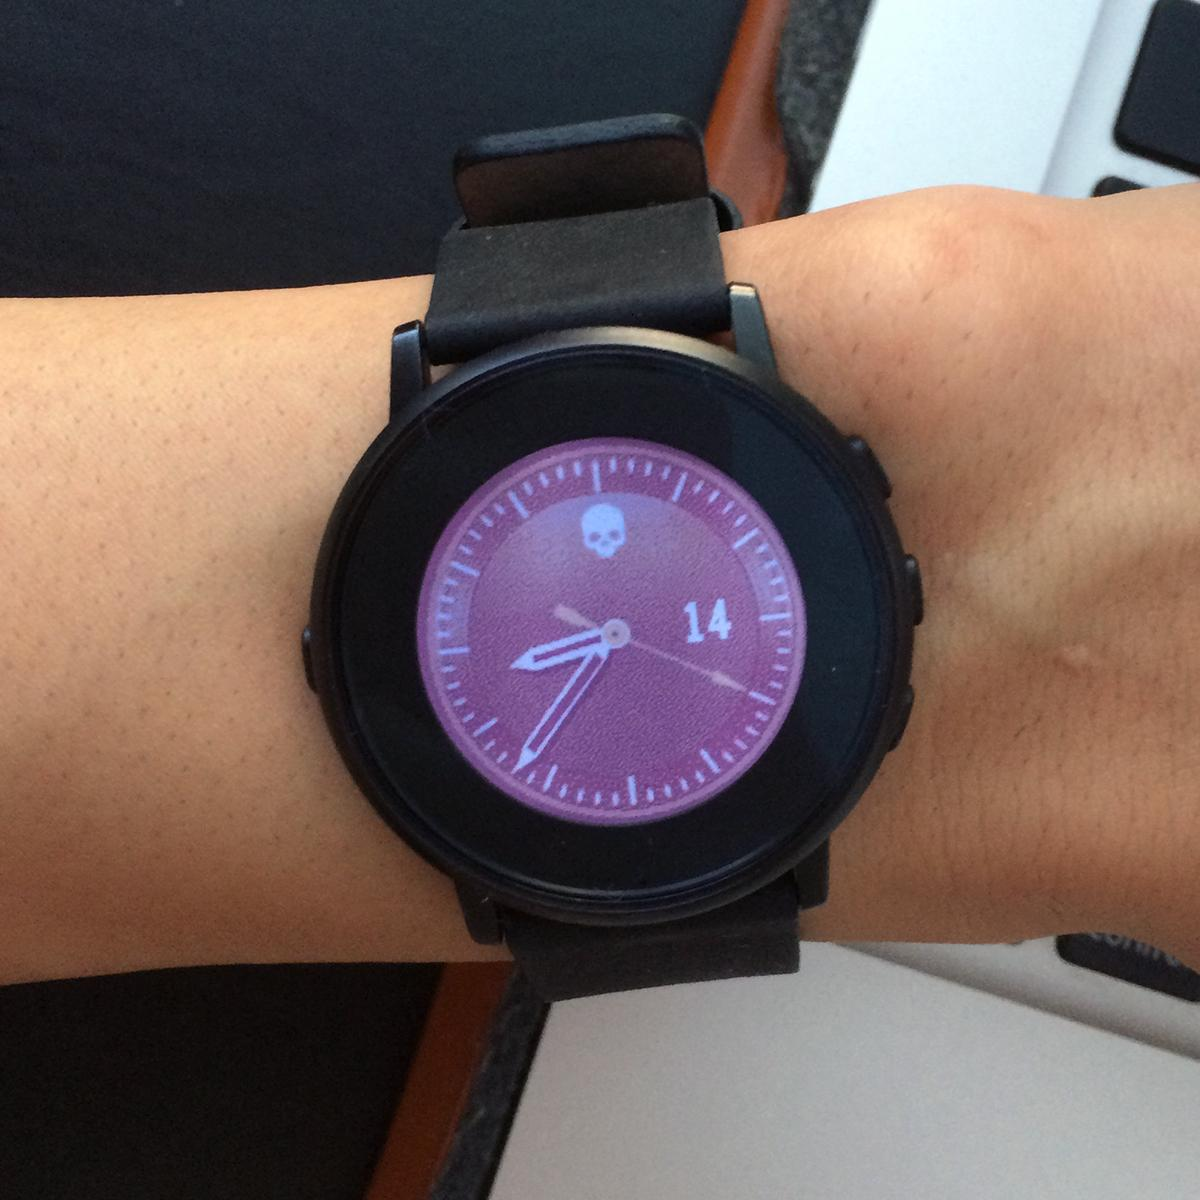 Creepy Pebble watch faces